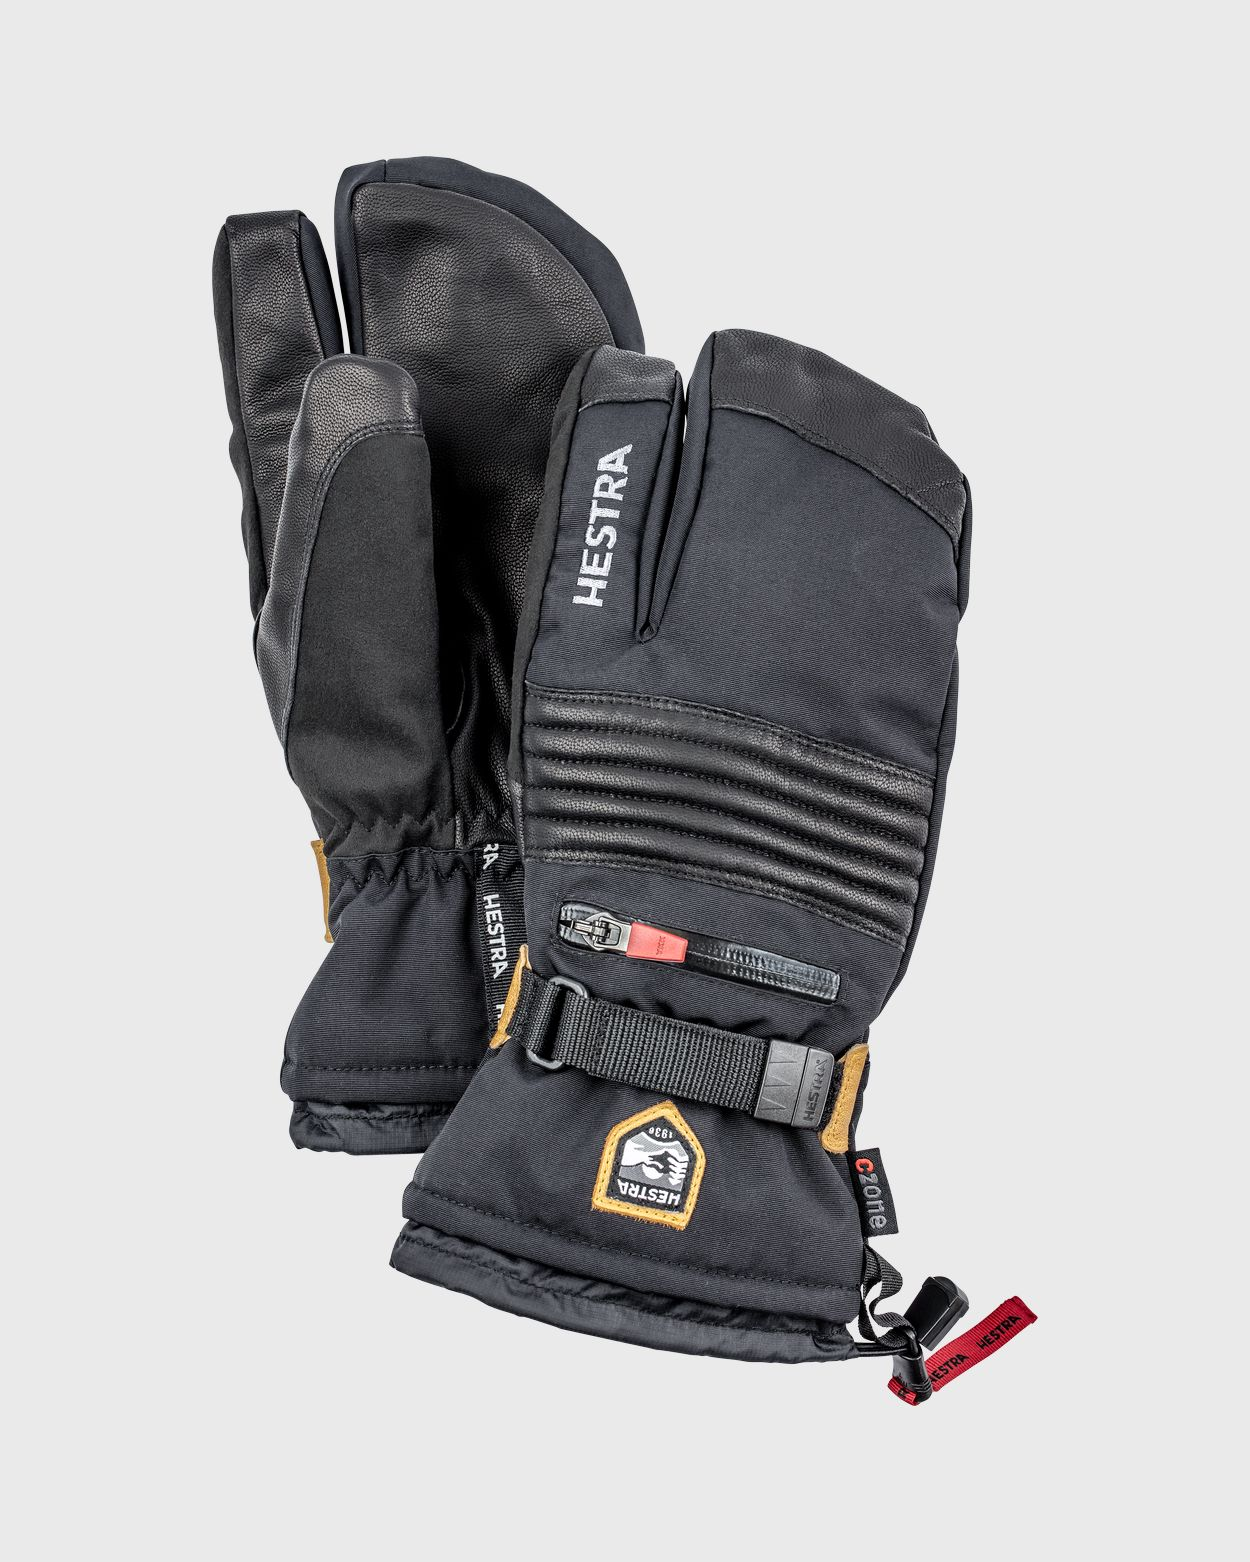 All Mountain Czone 3-Finger Gloves Hestra Black 6